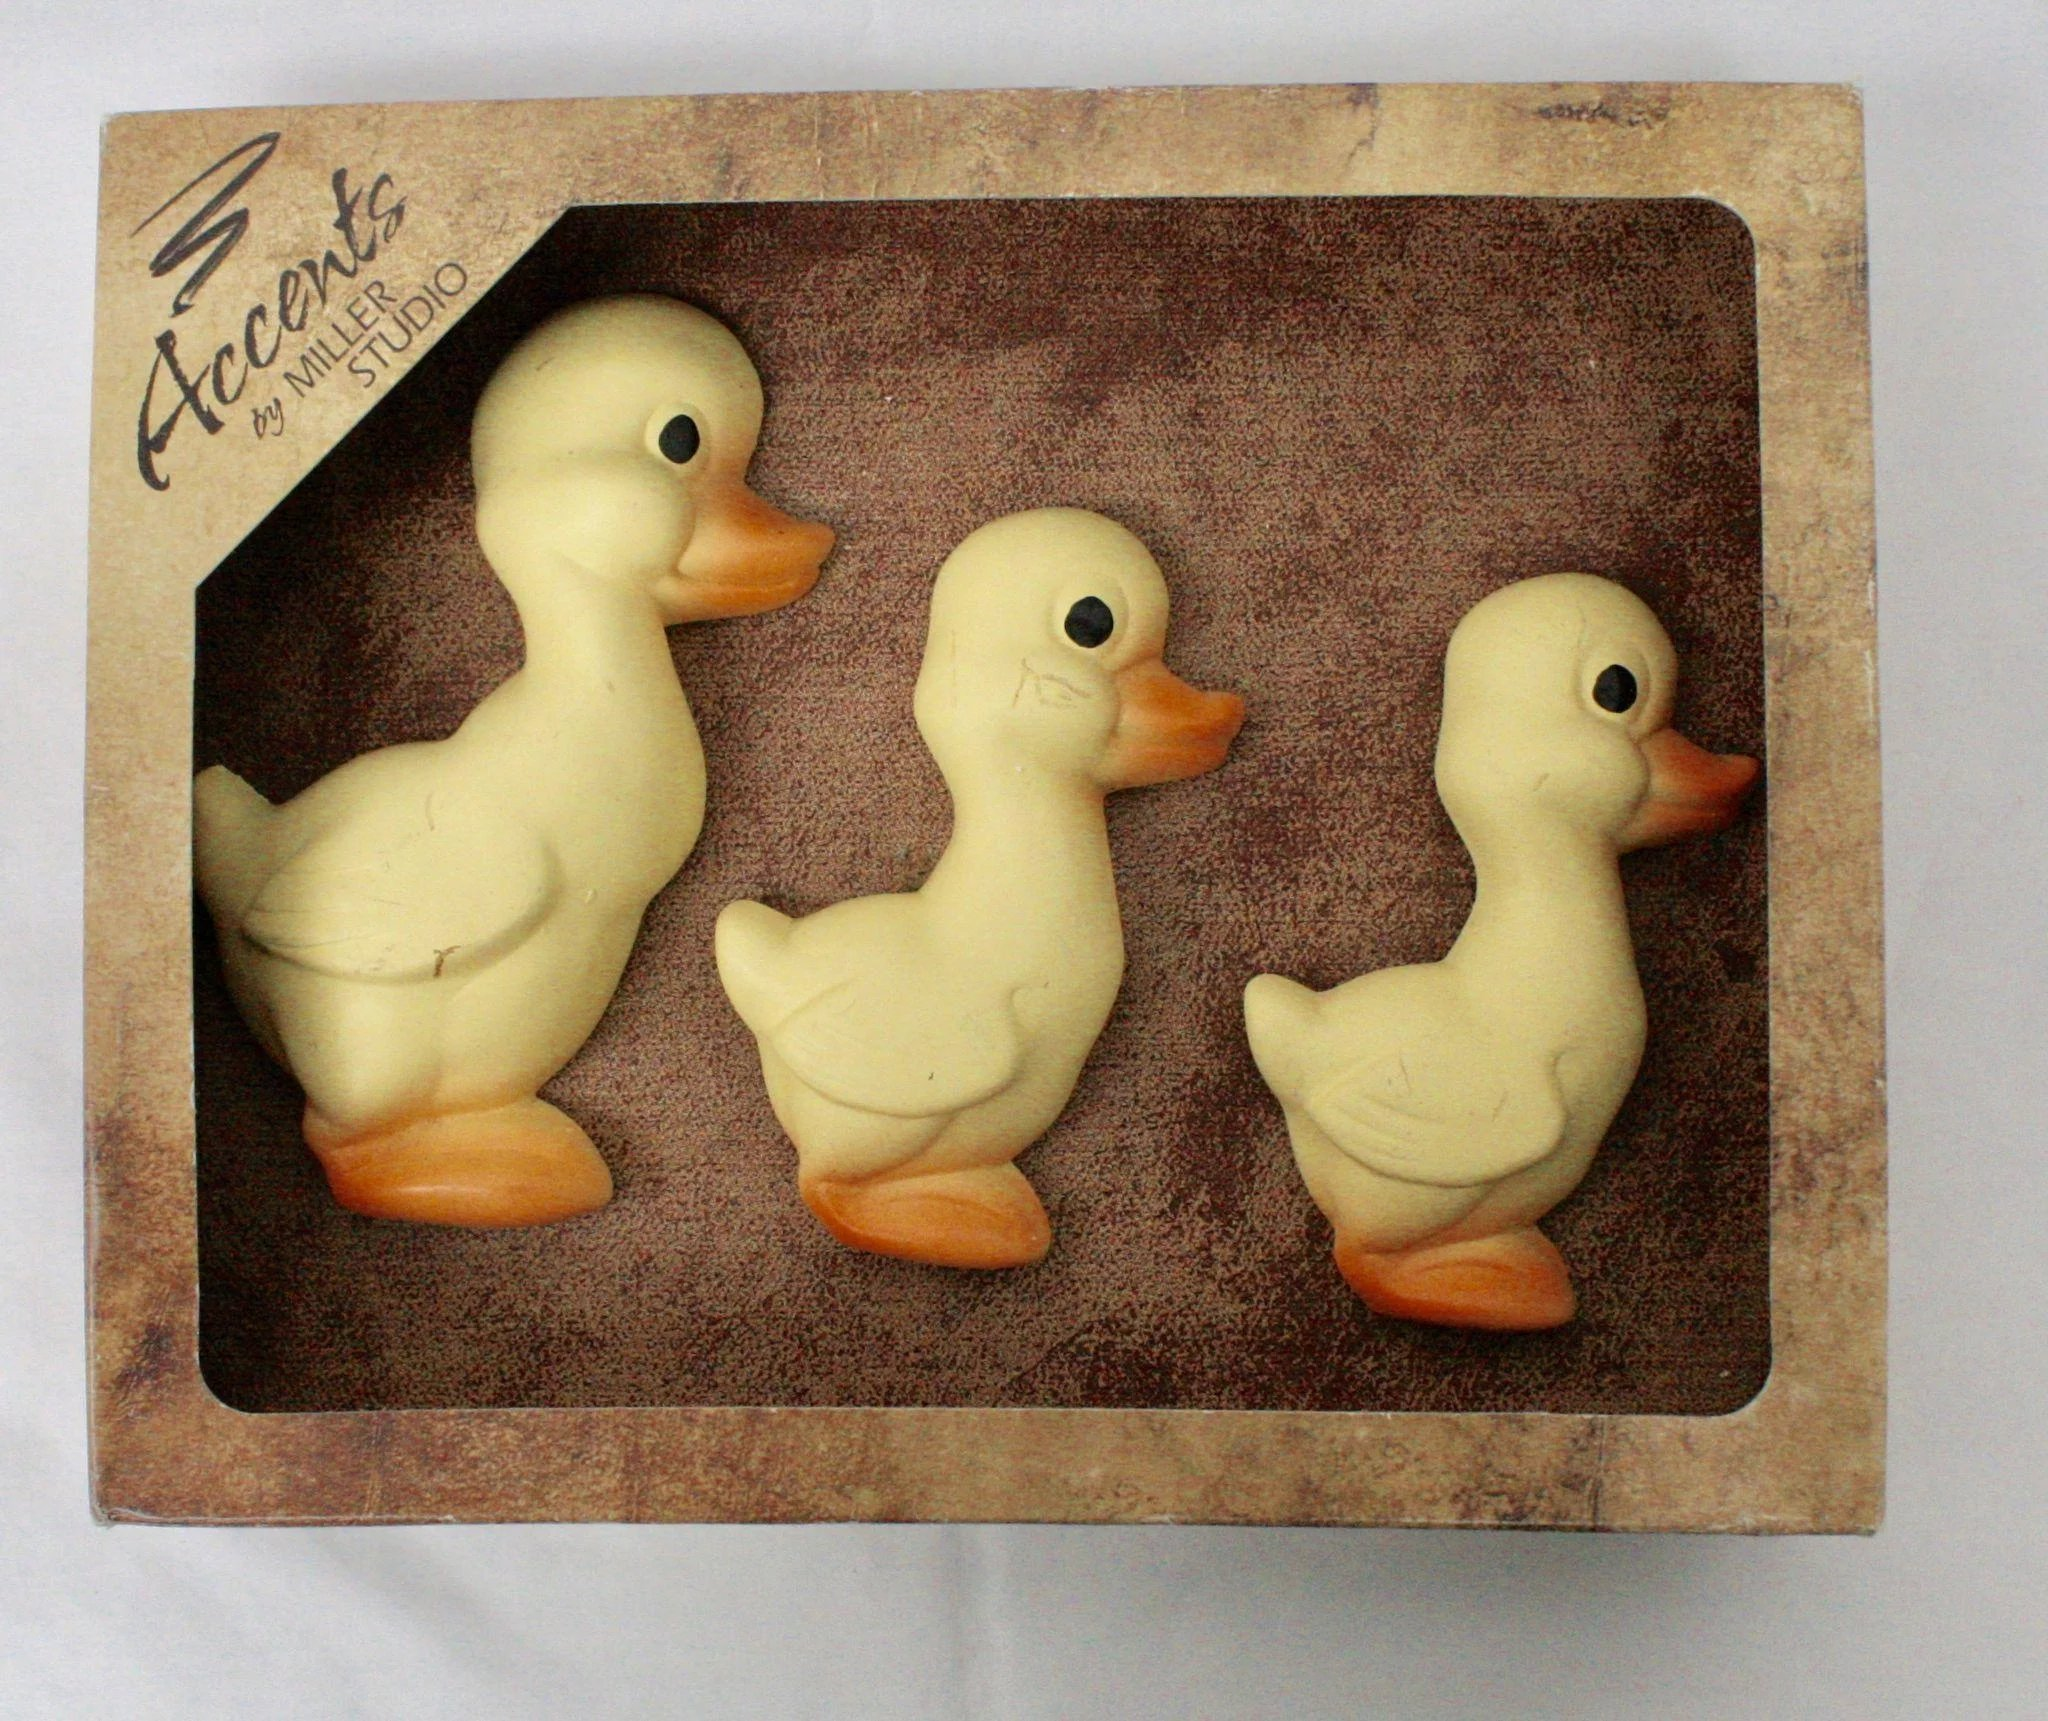 Miller Studio Set of 3 Yellow Ducks Chalkware Plaques/Wall Art Decor ...